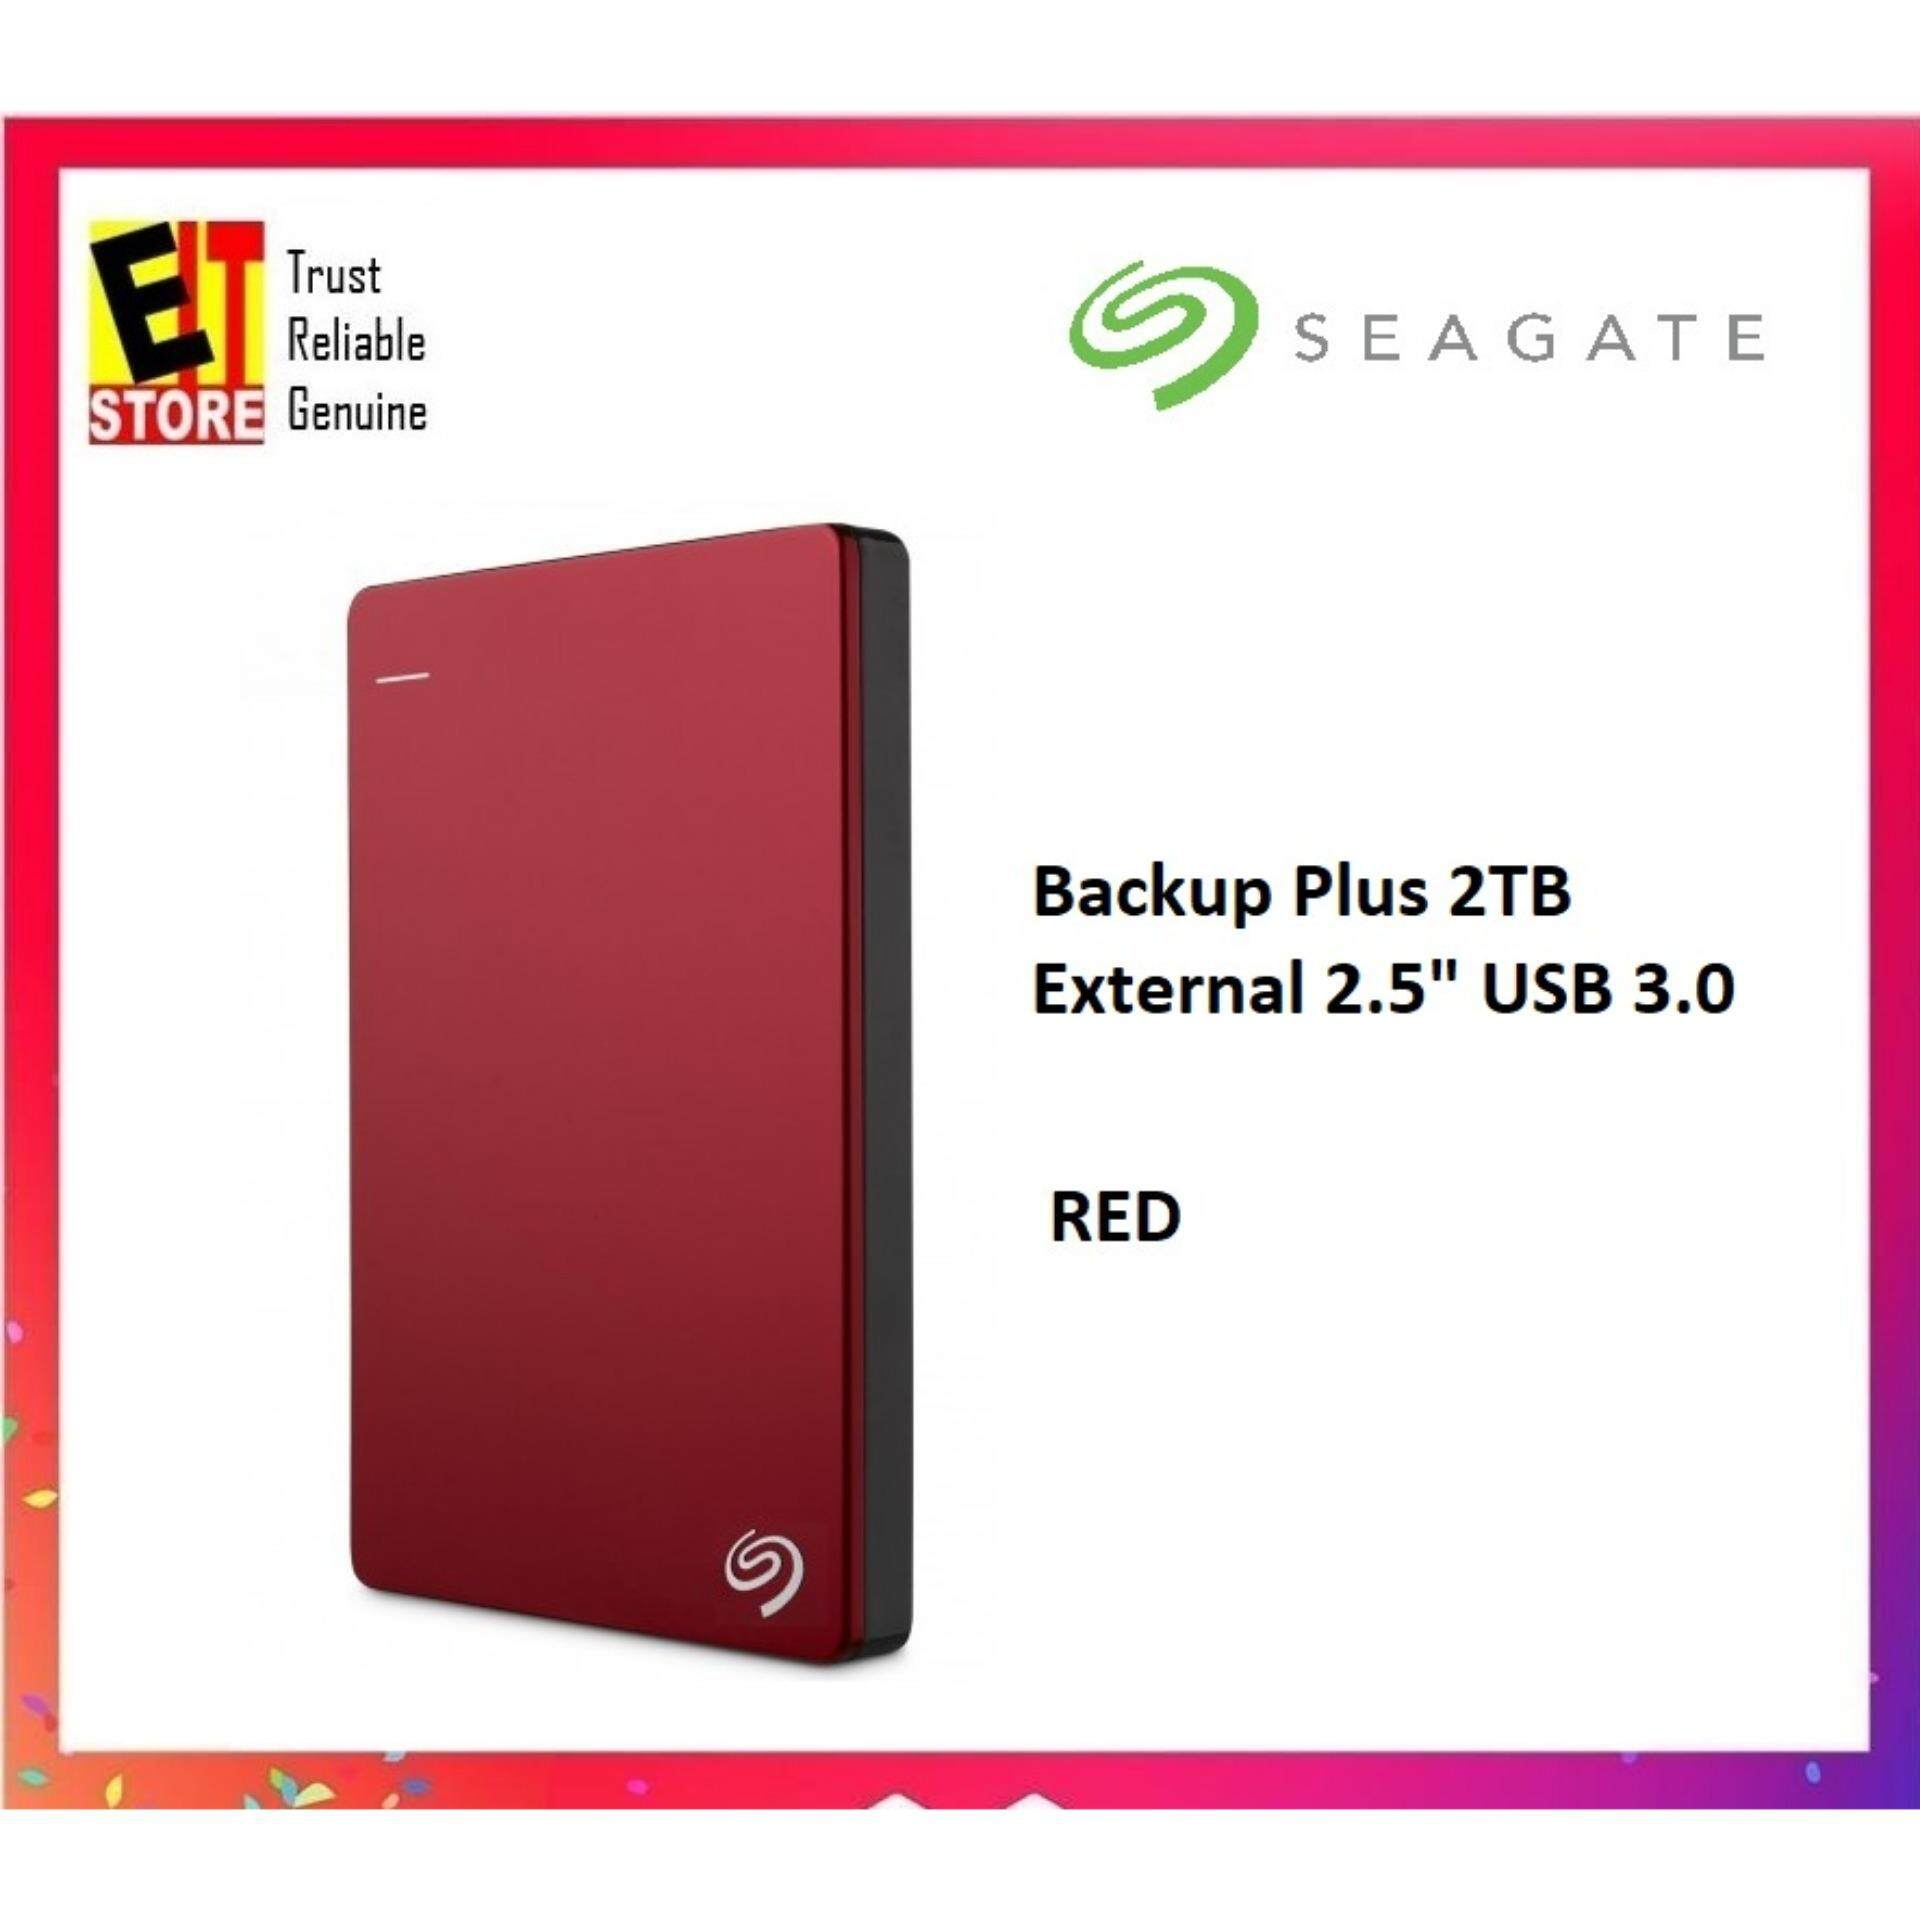 External Hard Drives Disk With Best Price In Malaysia Casing Harddisk 25inch Sata Usb 3o Hdd Case Orico 2139u3 Seagate 2tb Backup Plus Slim Portable Drive